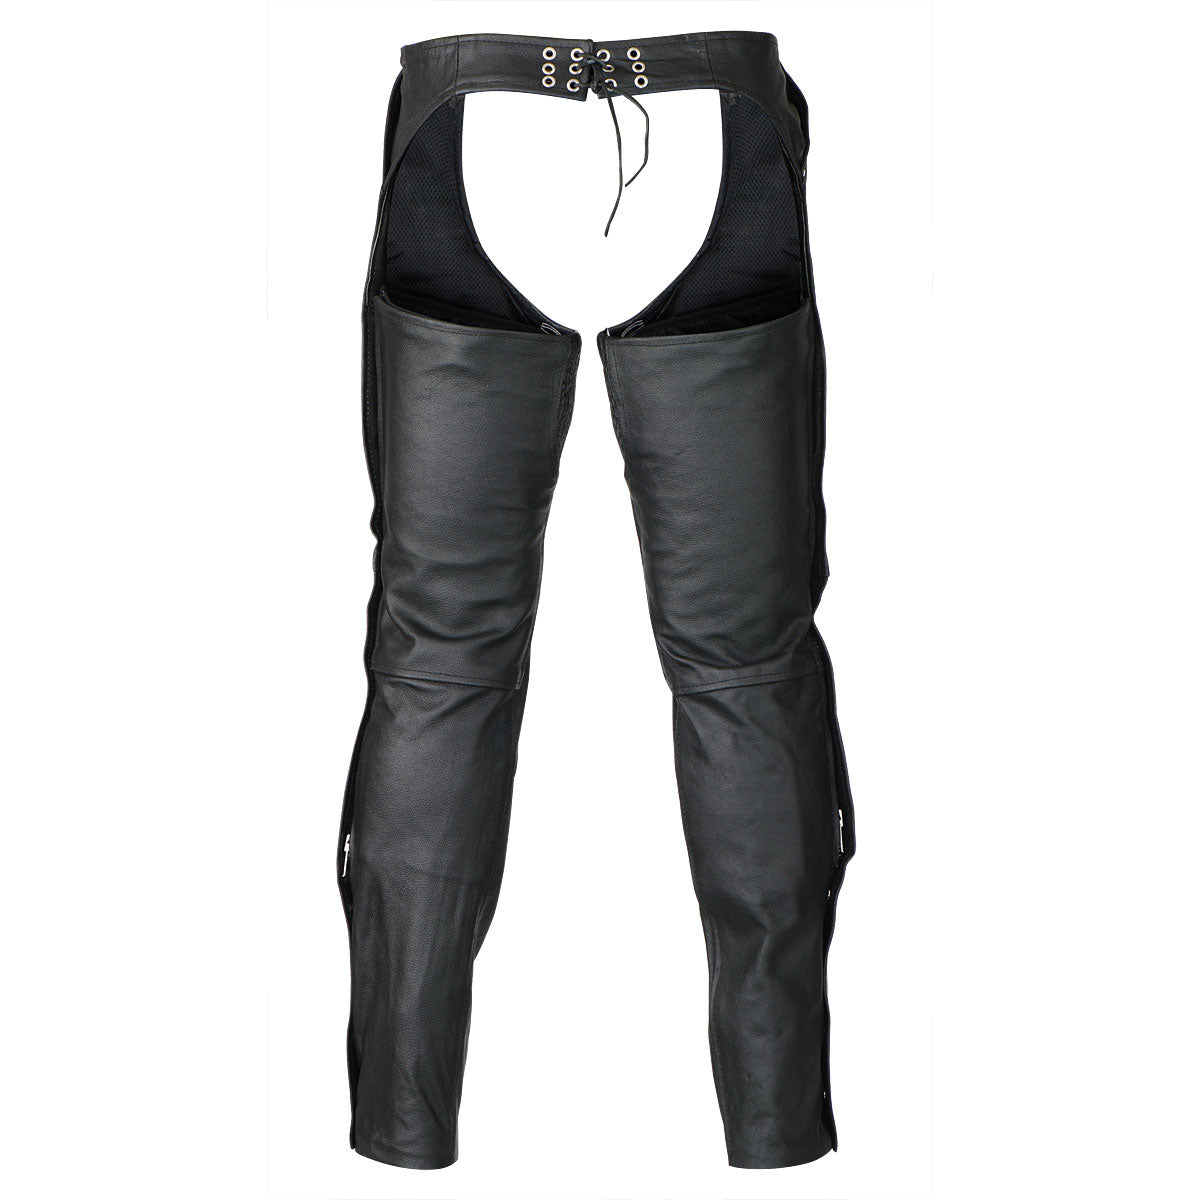 White Leather Chaps With Side Pocket